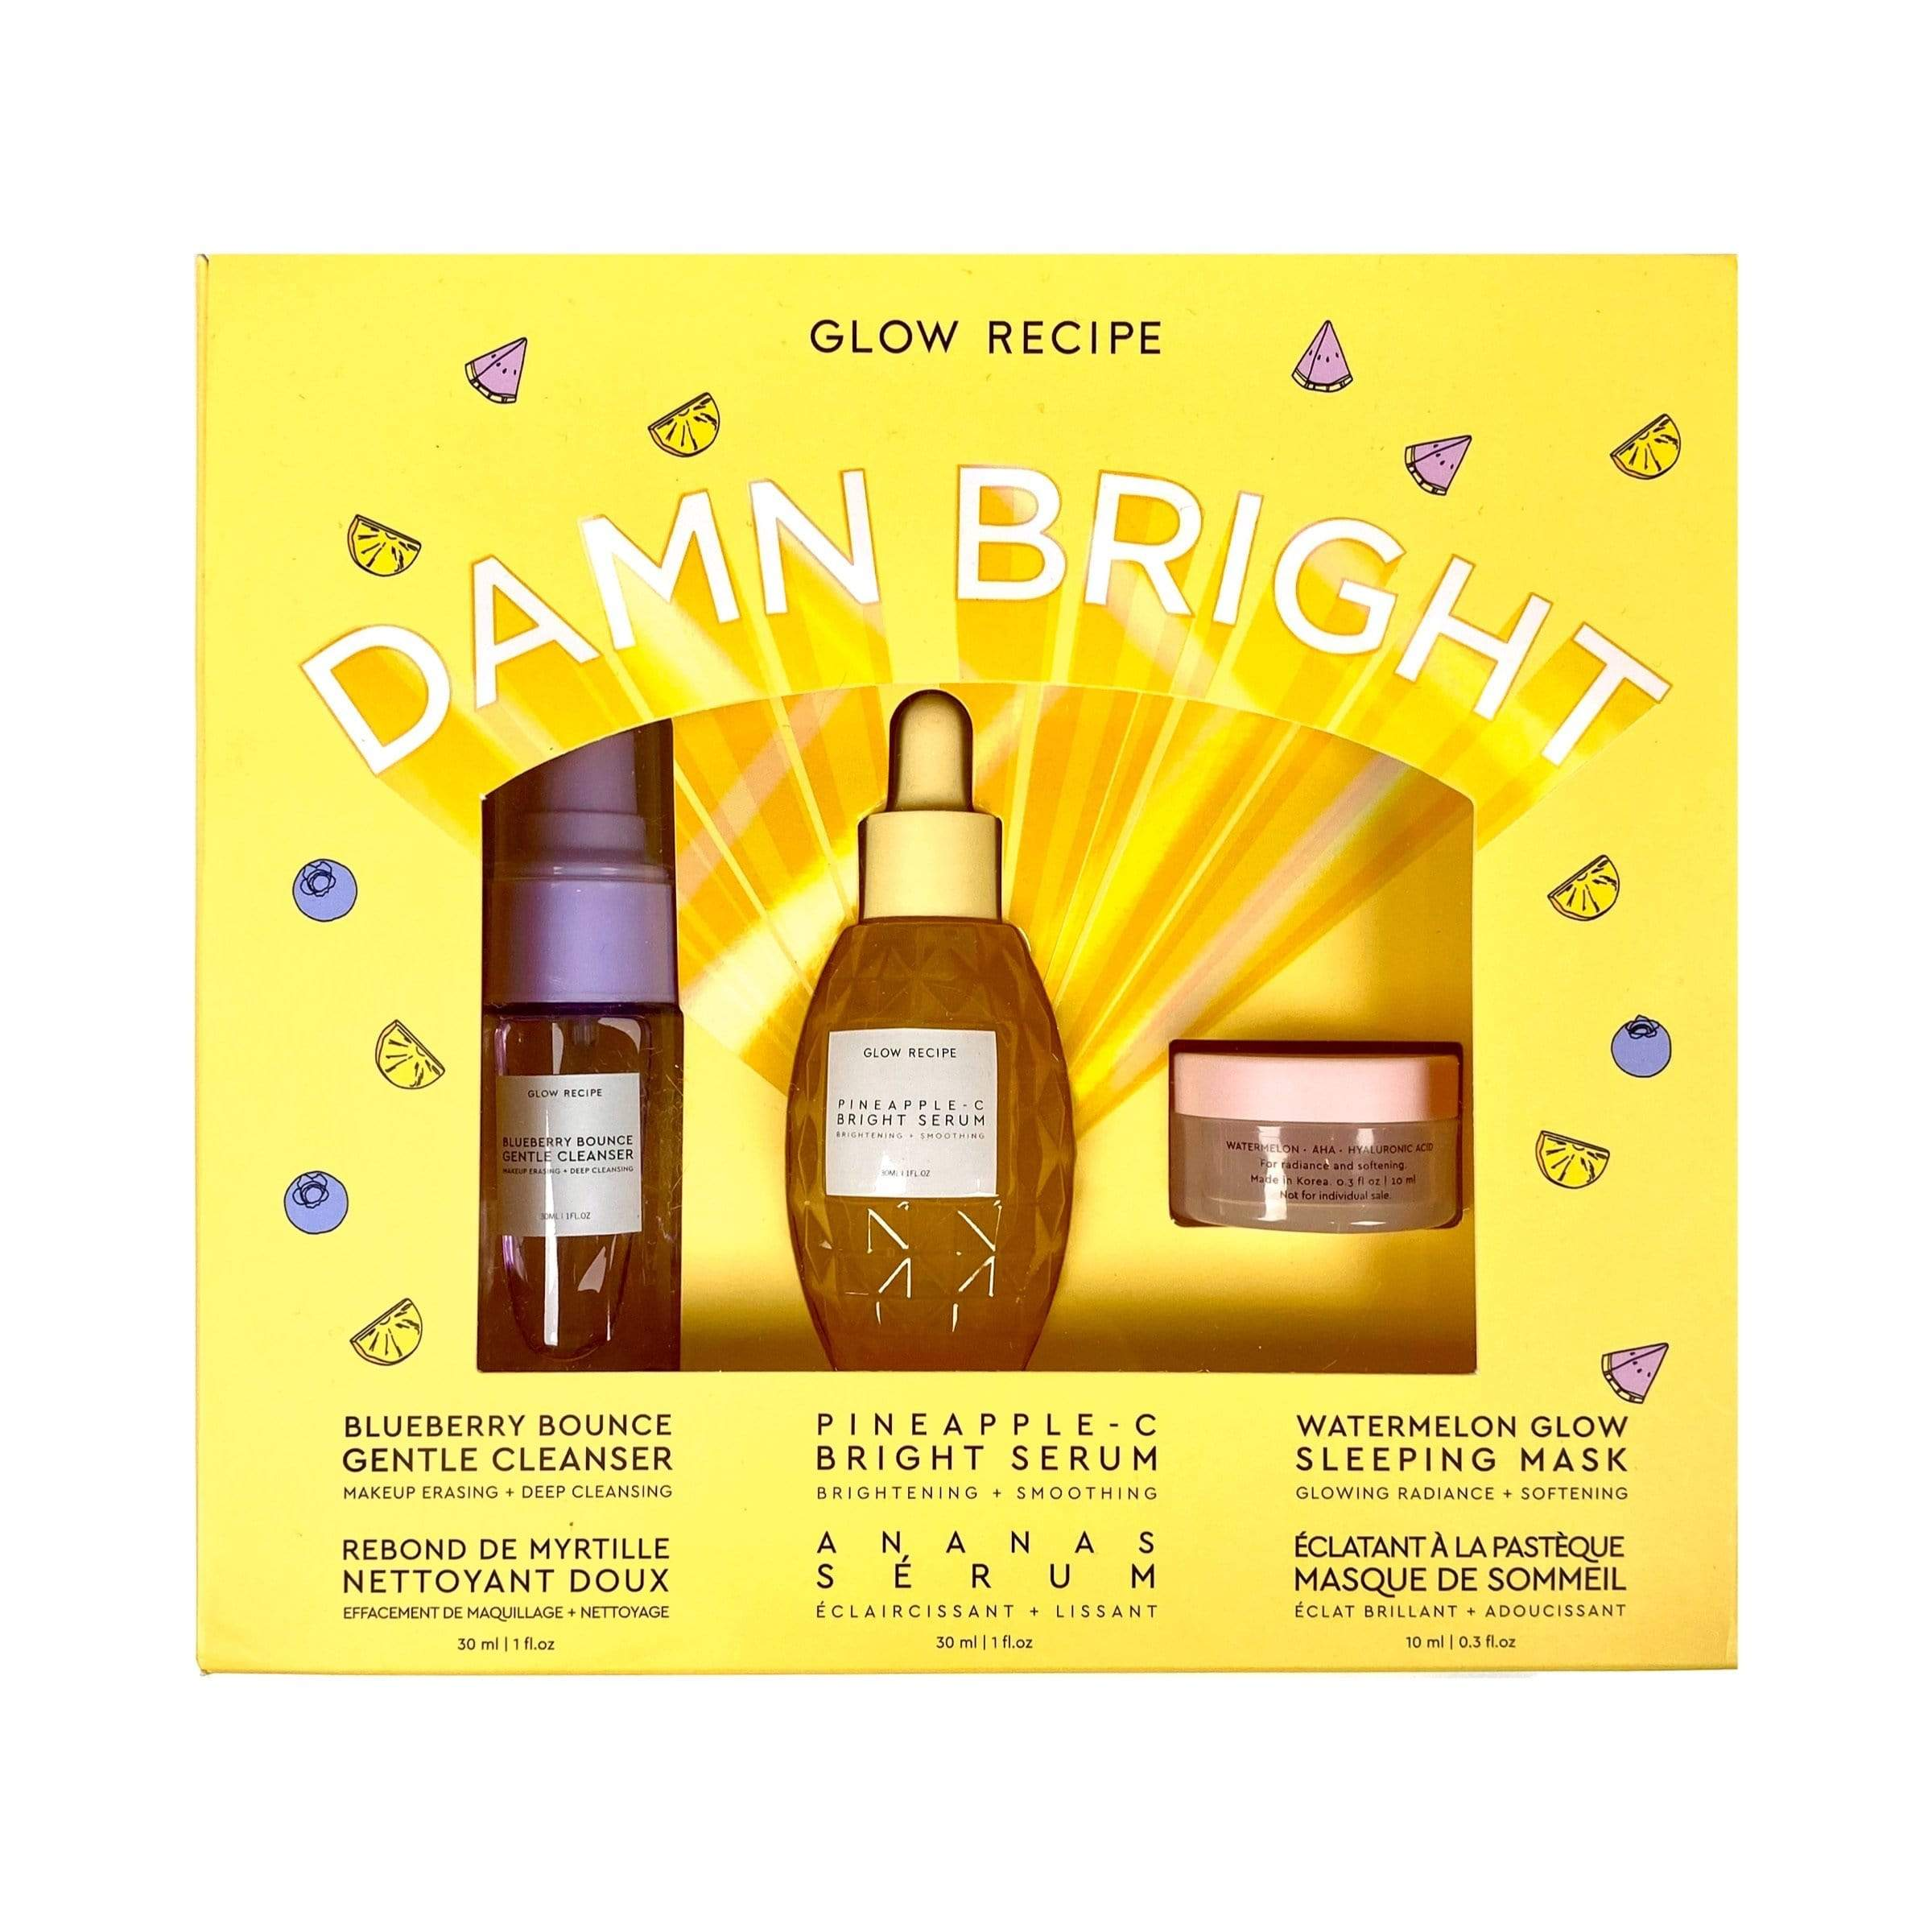 Glow Recipe Skin Care GLOW RECIPE Damn Bright